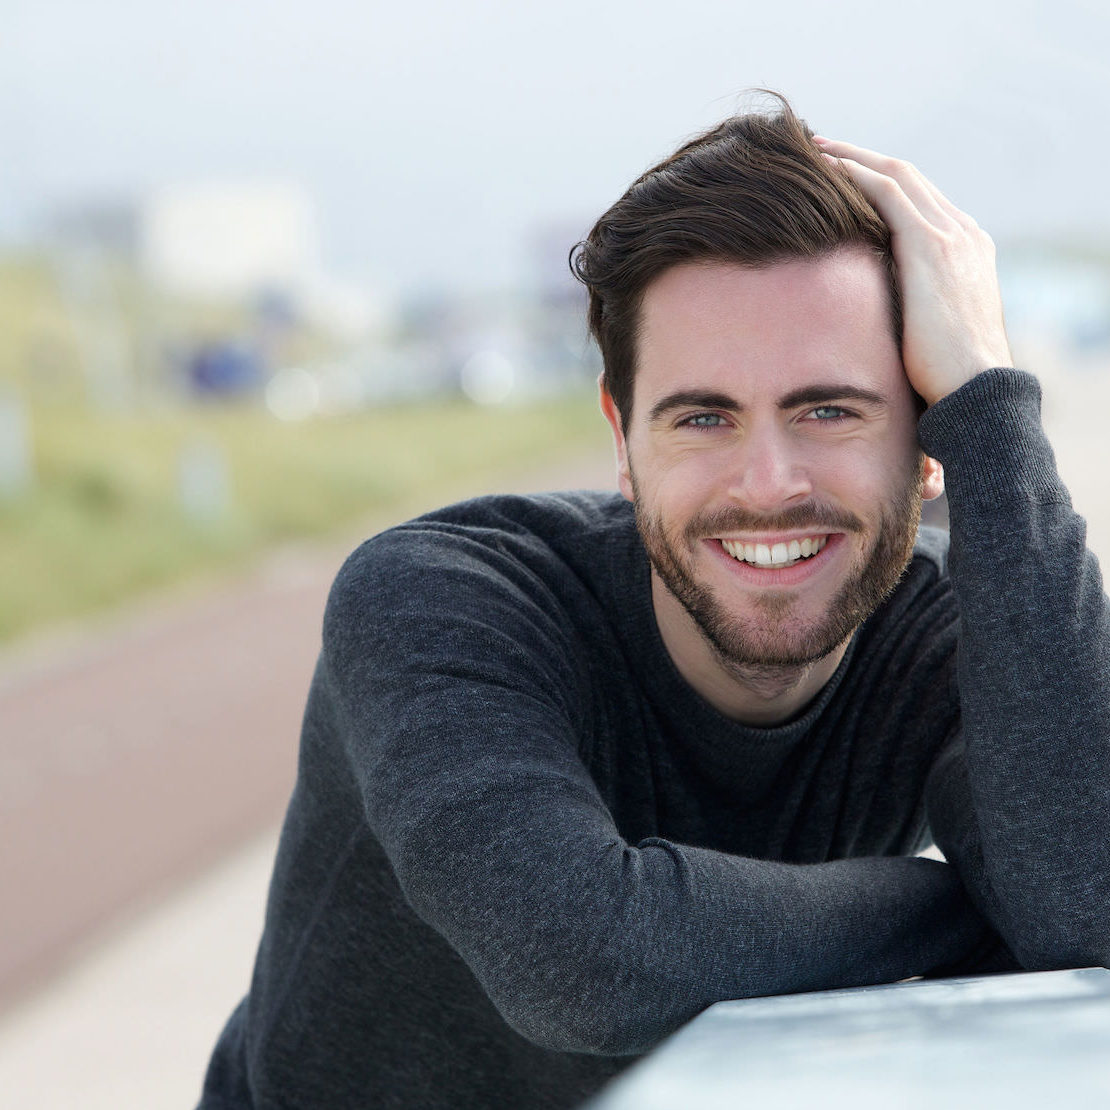 close up portrait of a happy man posing with hand in hair